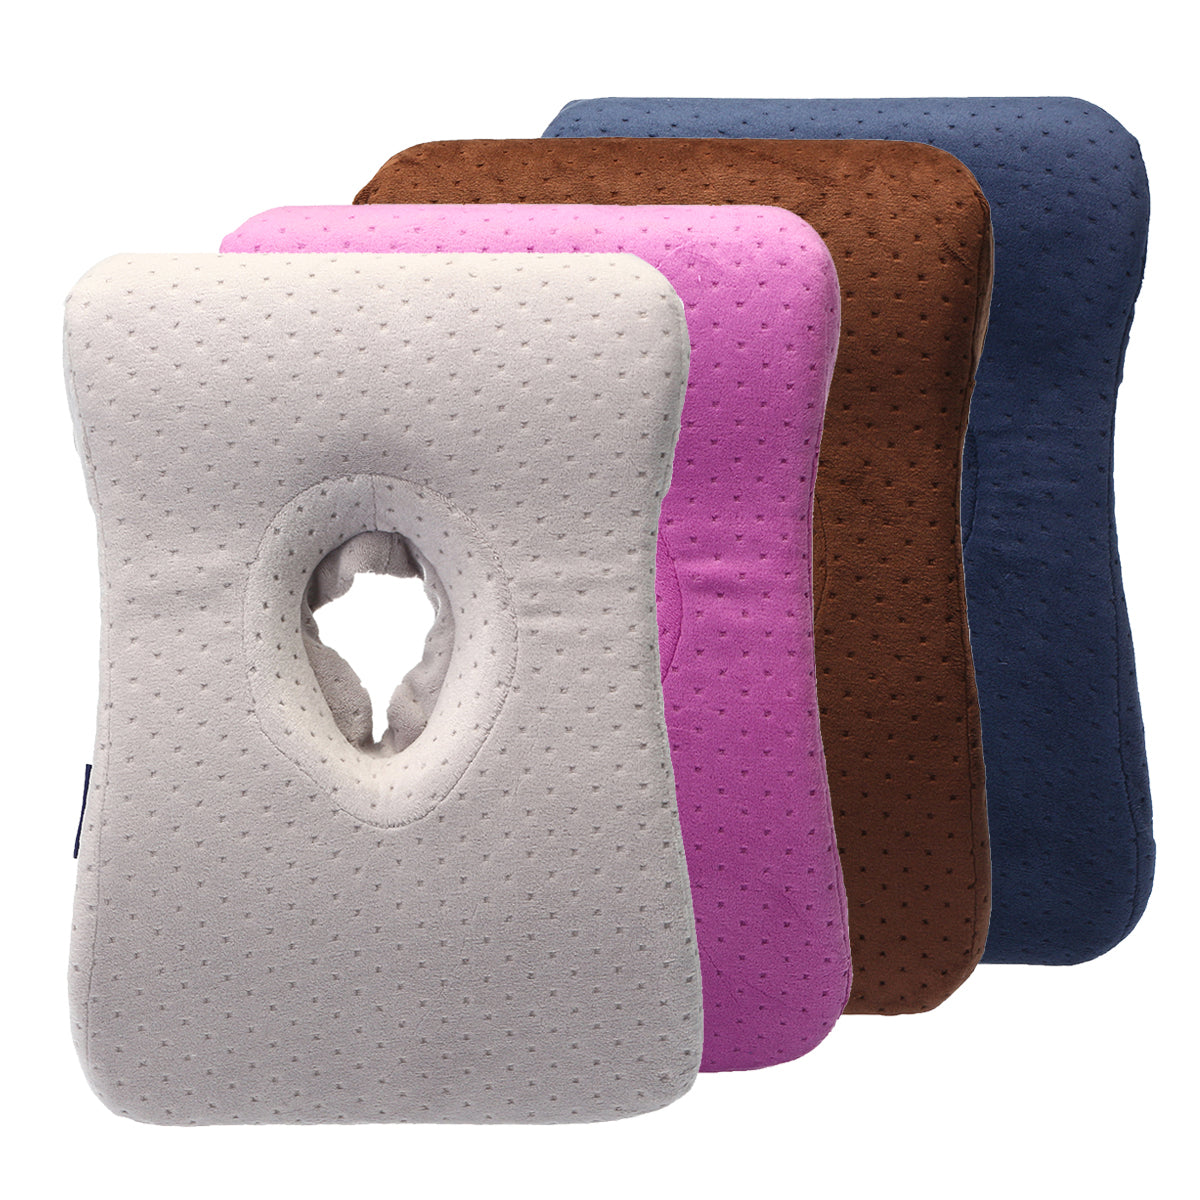 RelaxGel™ Memory Foam Face Down Pillow